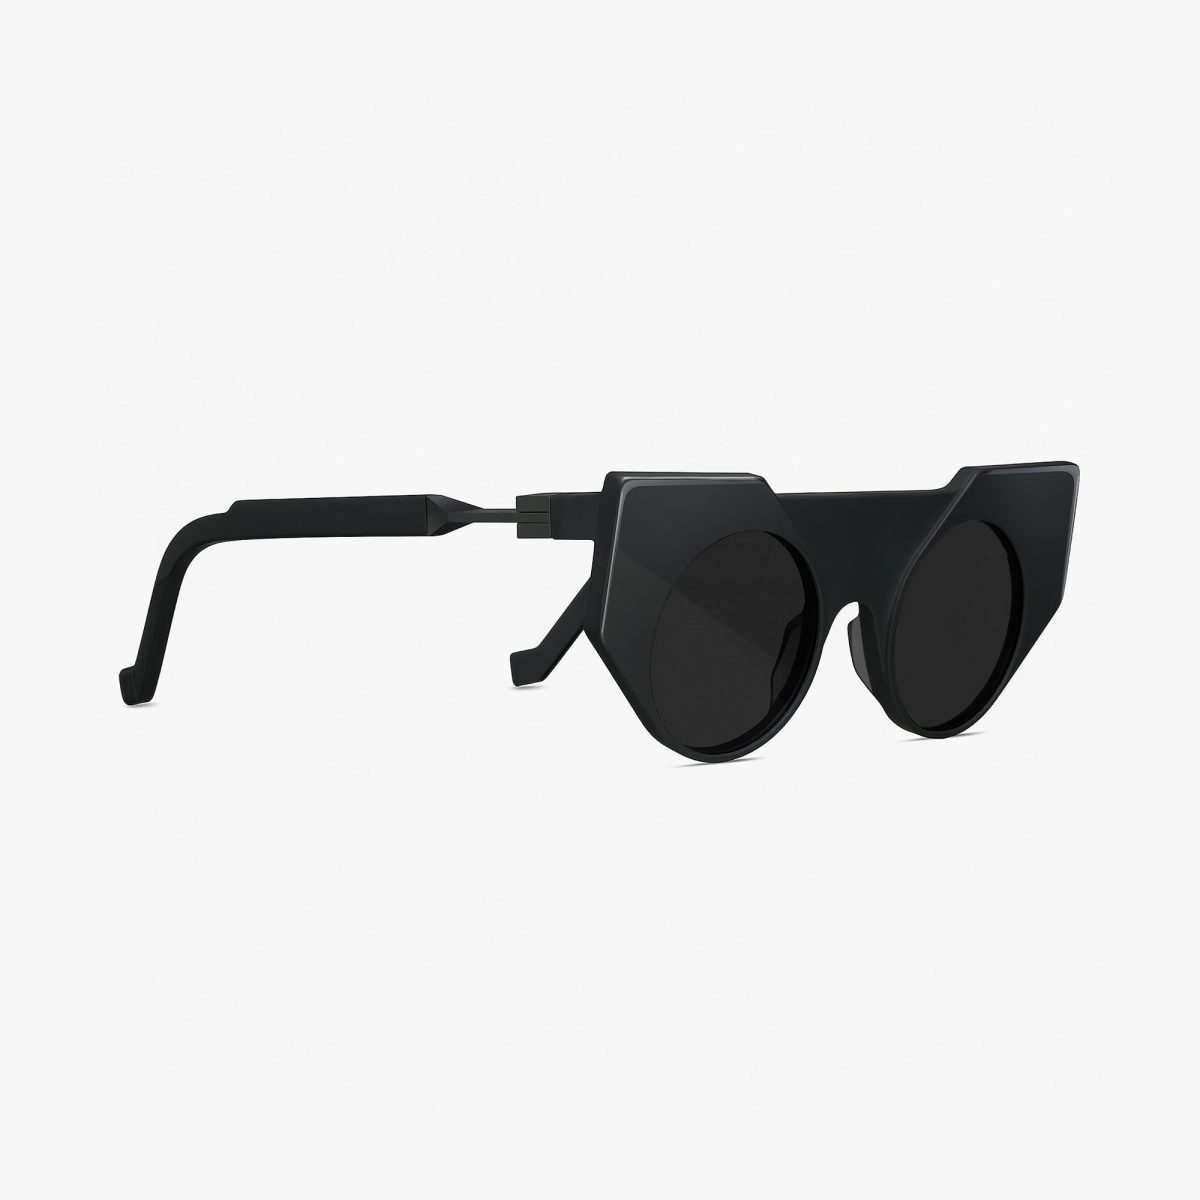 VAVA EYEWEAR ONLINE SHOP BL0007 SUNGLASS BLACK SIDE